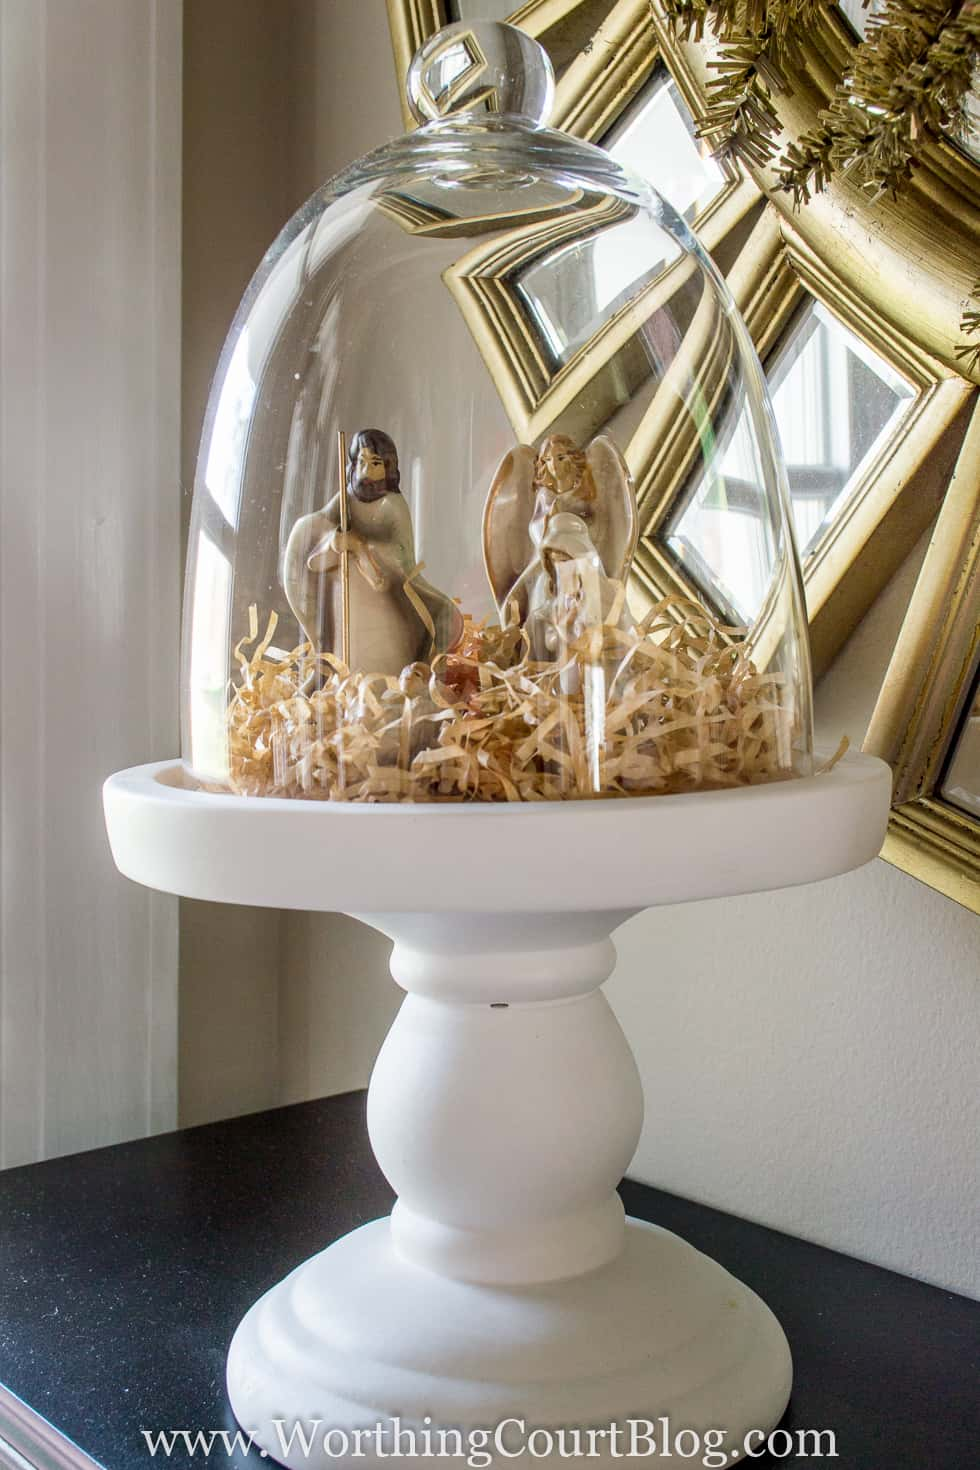 A tiny nativity set is very simply displayed under a glass cloche.